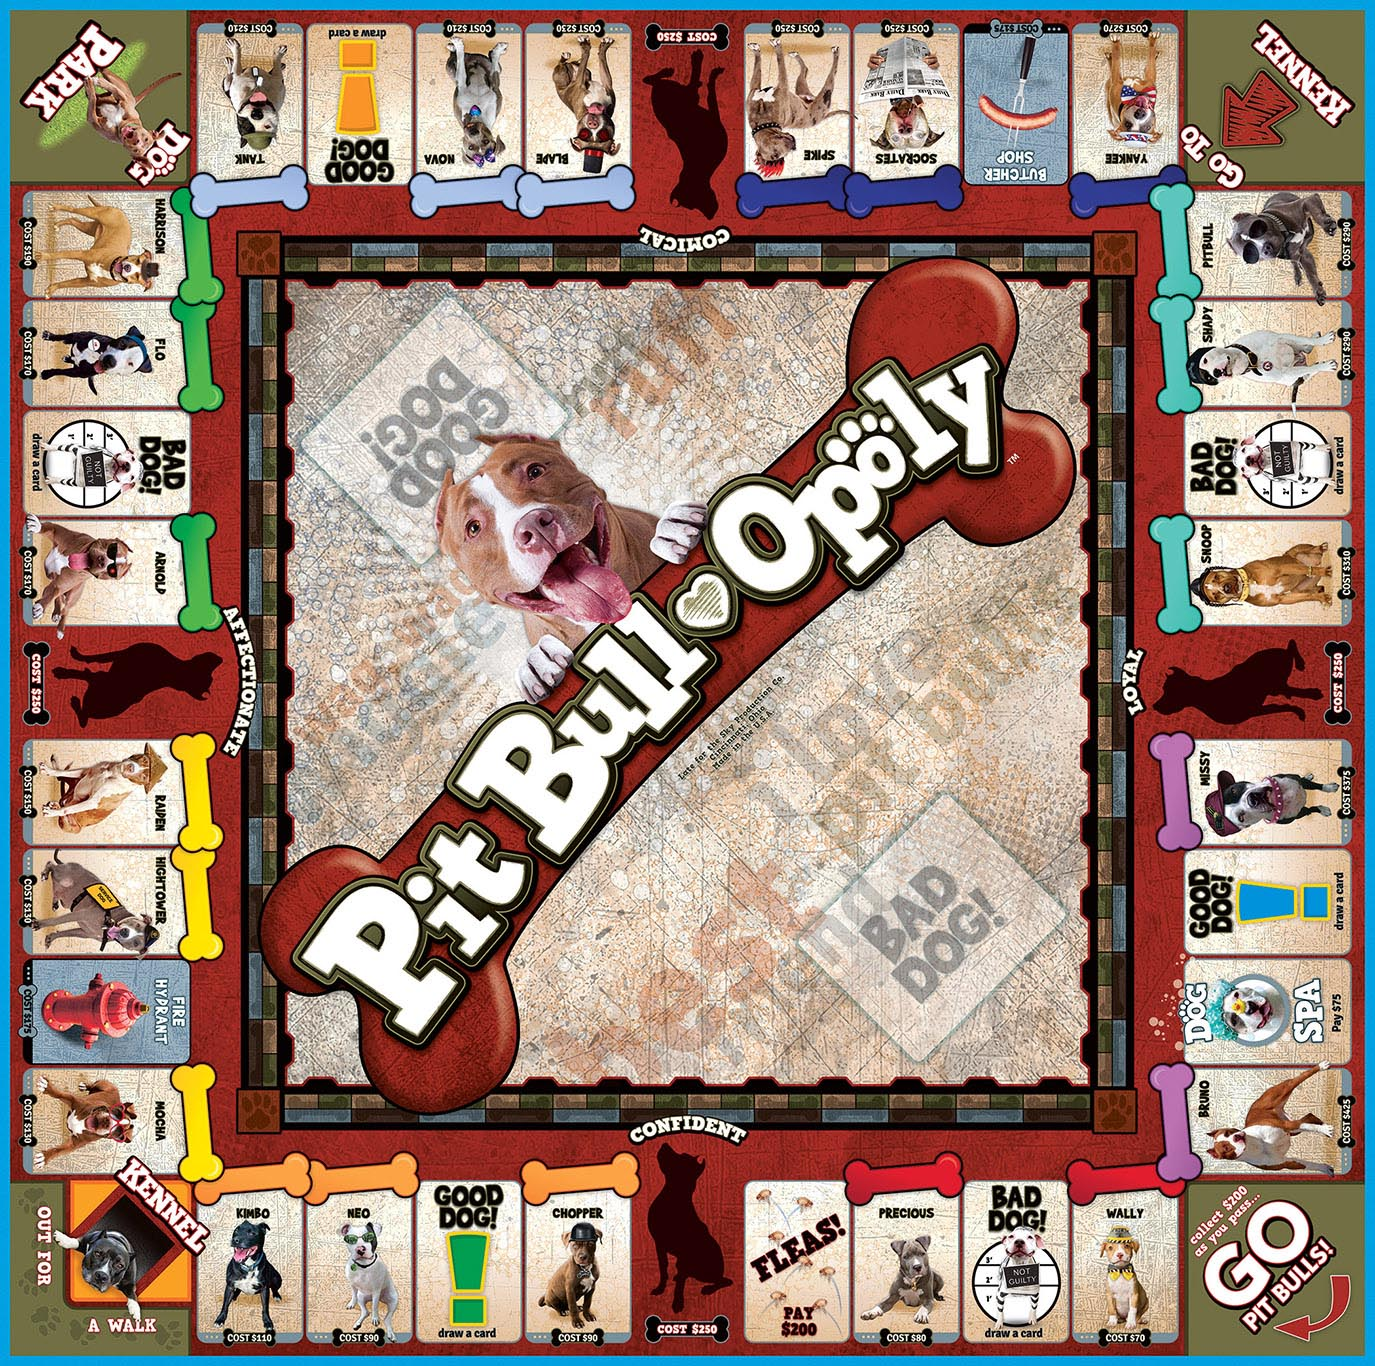 PITBULL-OPOLY Board Game